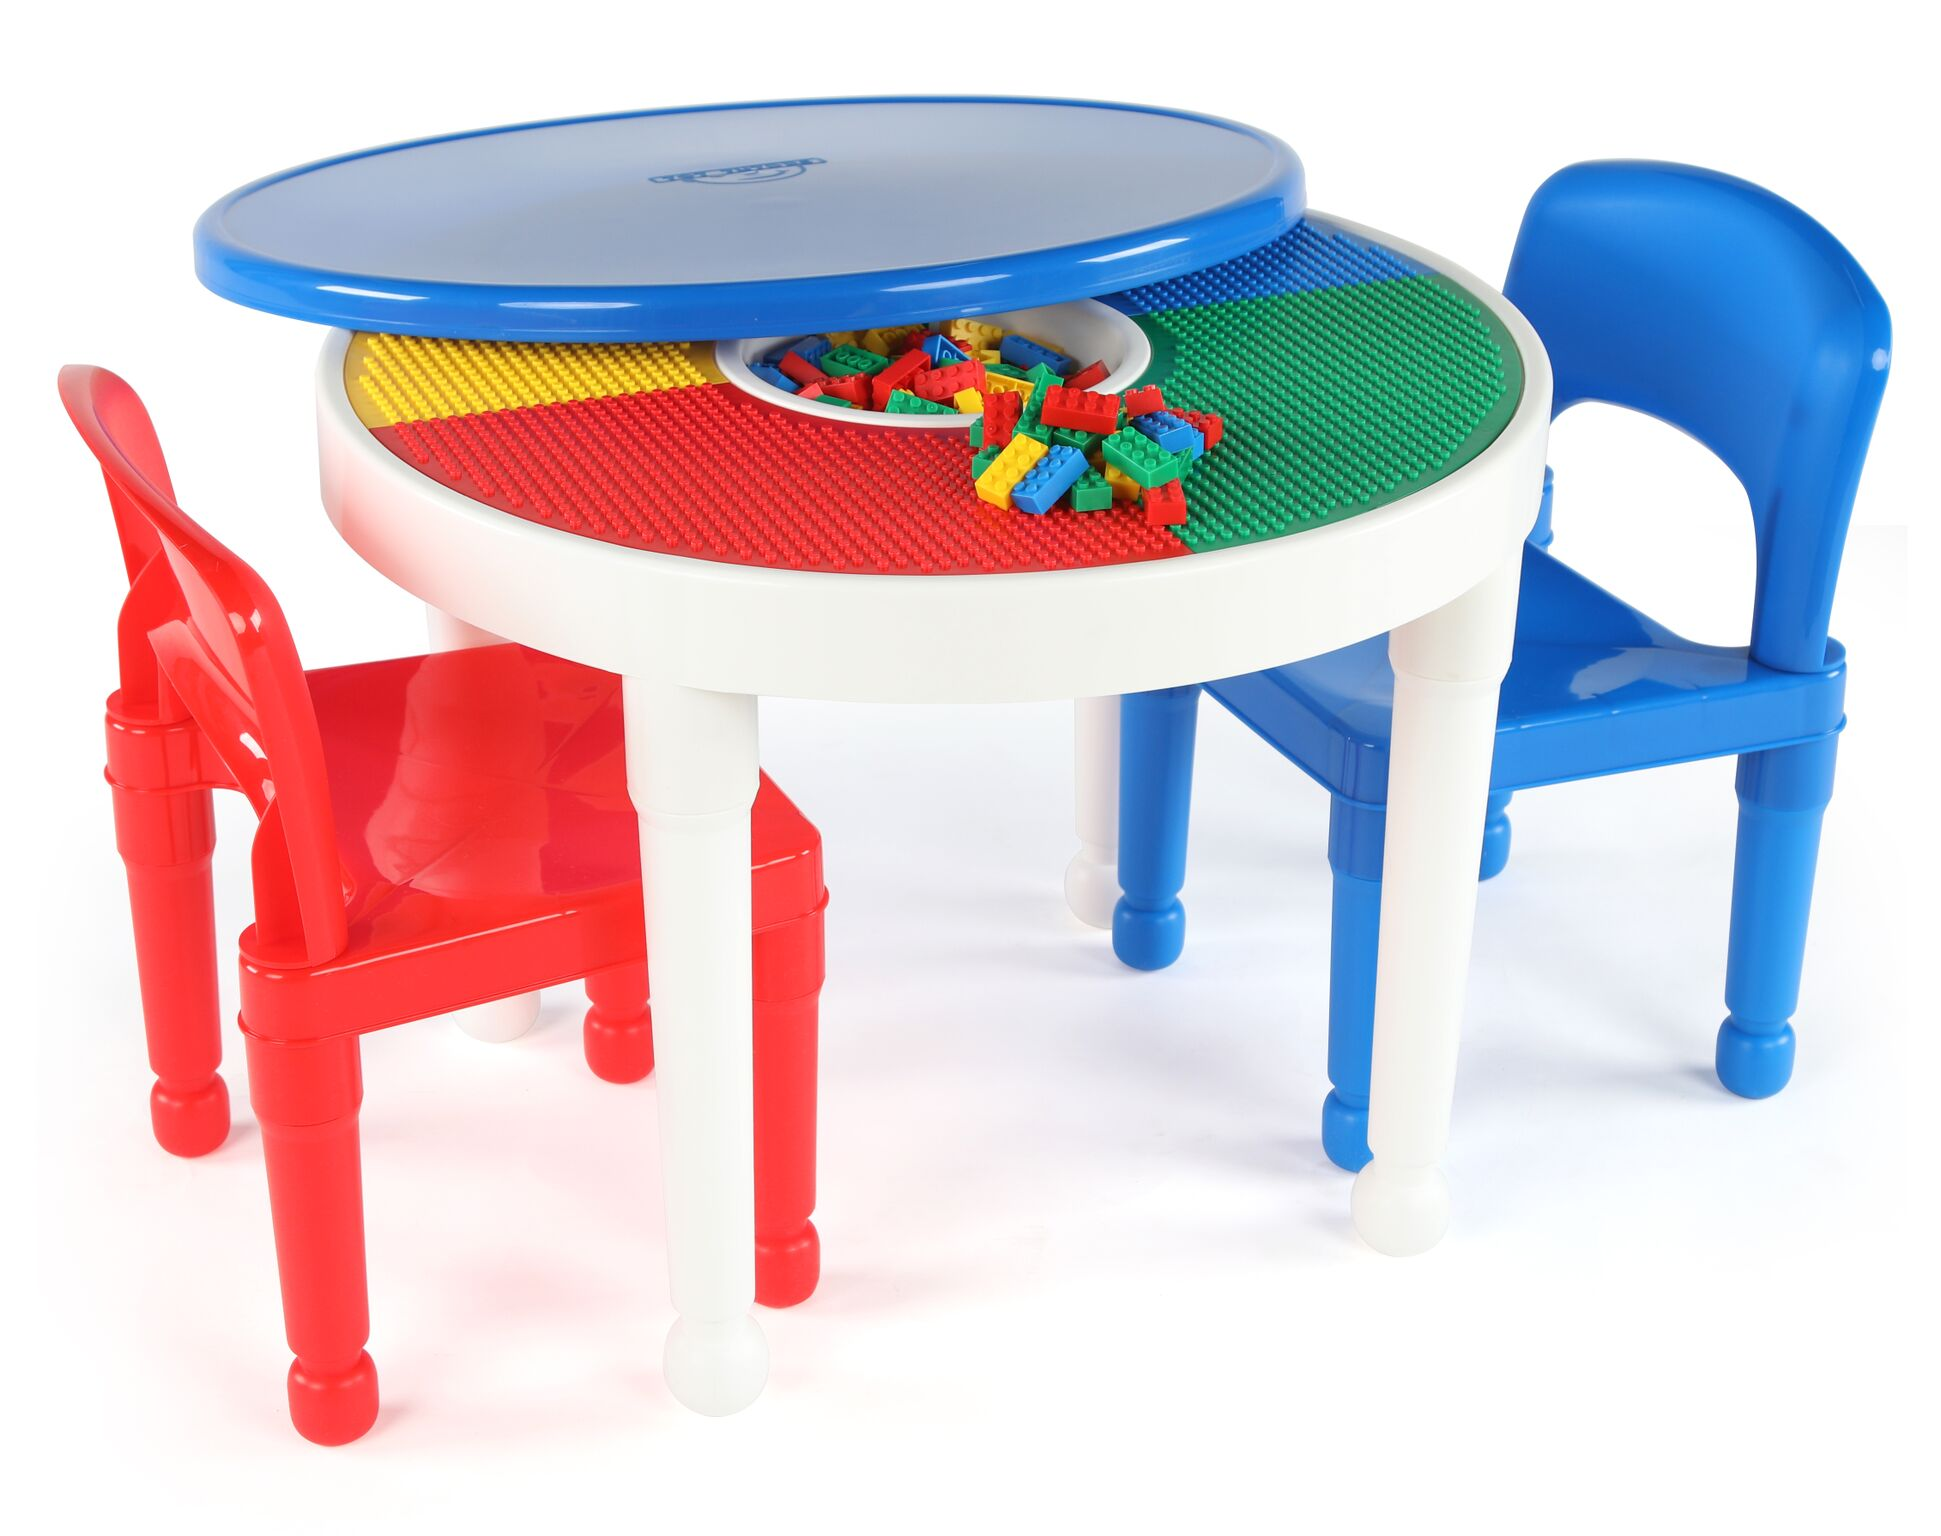 tot tutors table and chairs inglesina chair kids plastic 2 in 1 lego duplo compatible round